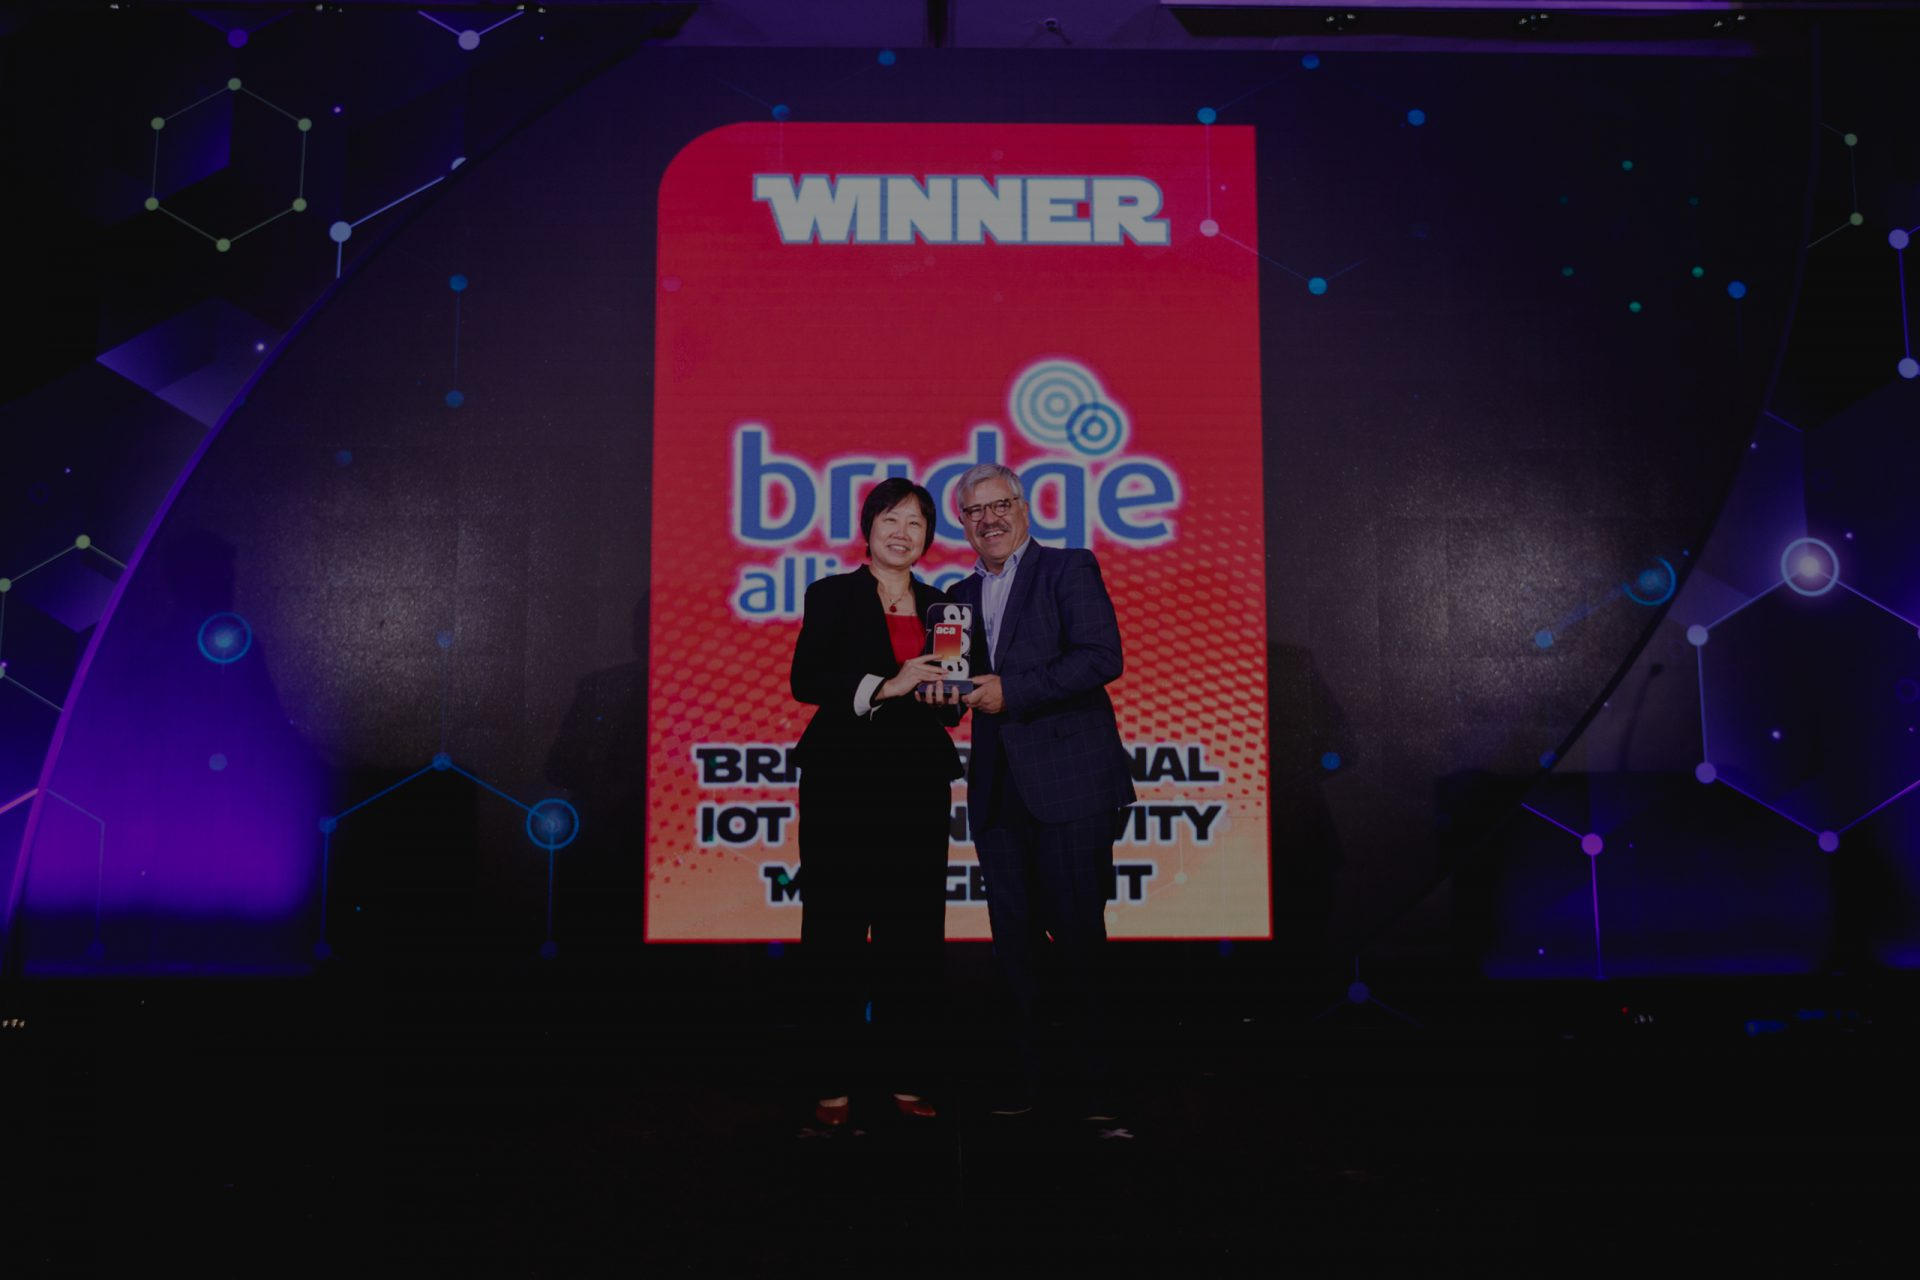 Bridge Alliance wins IoT Award